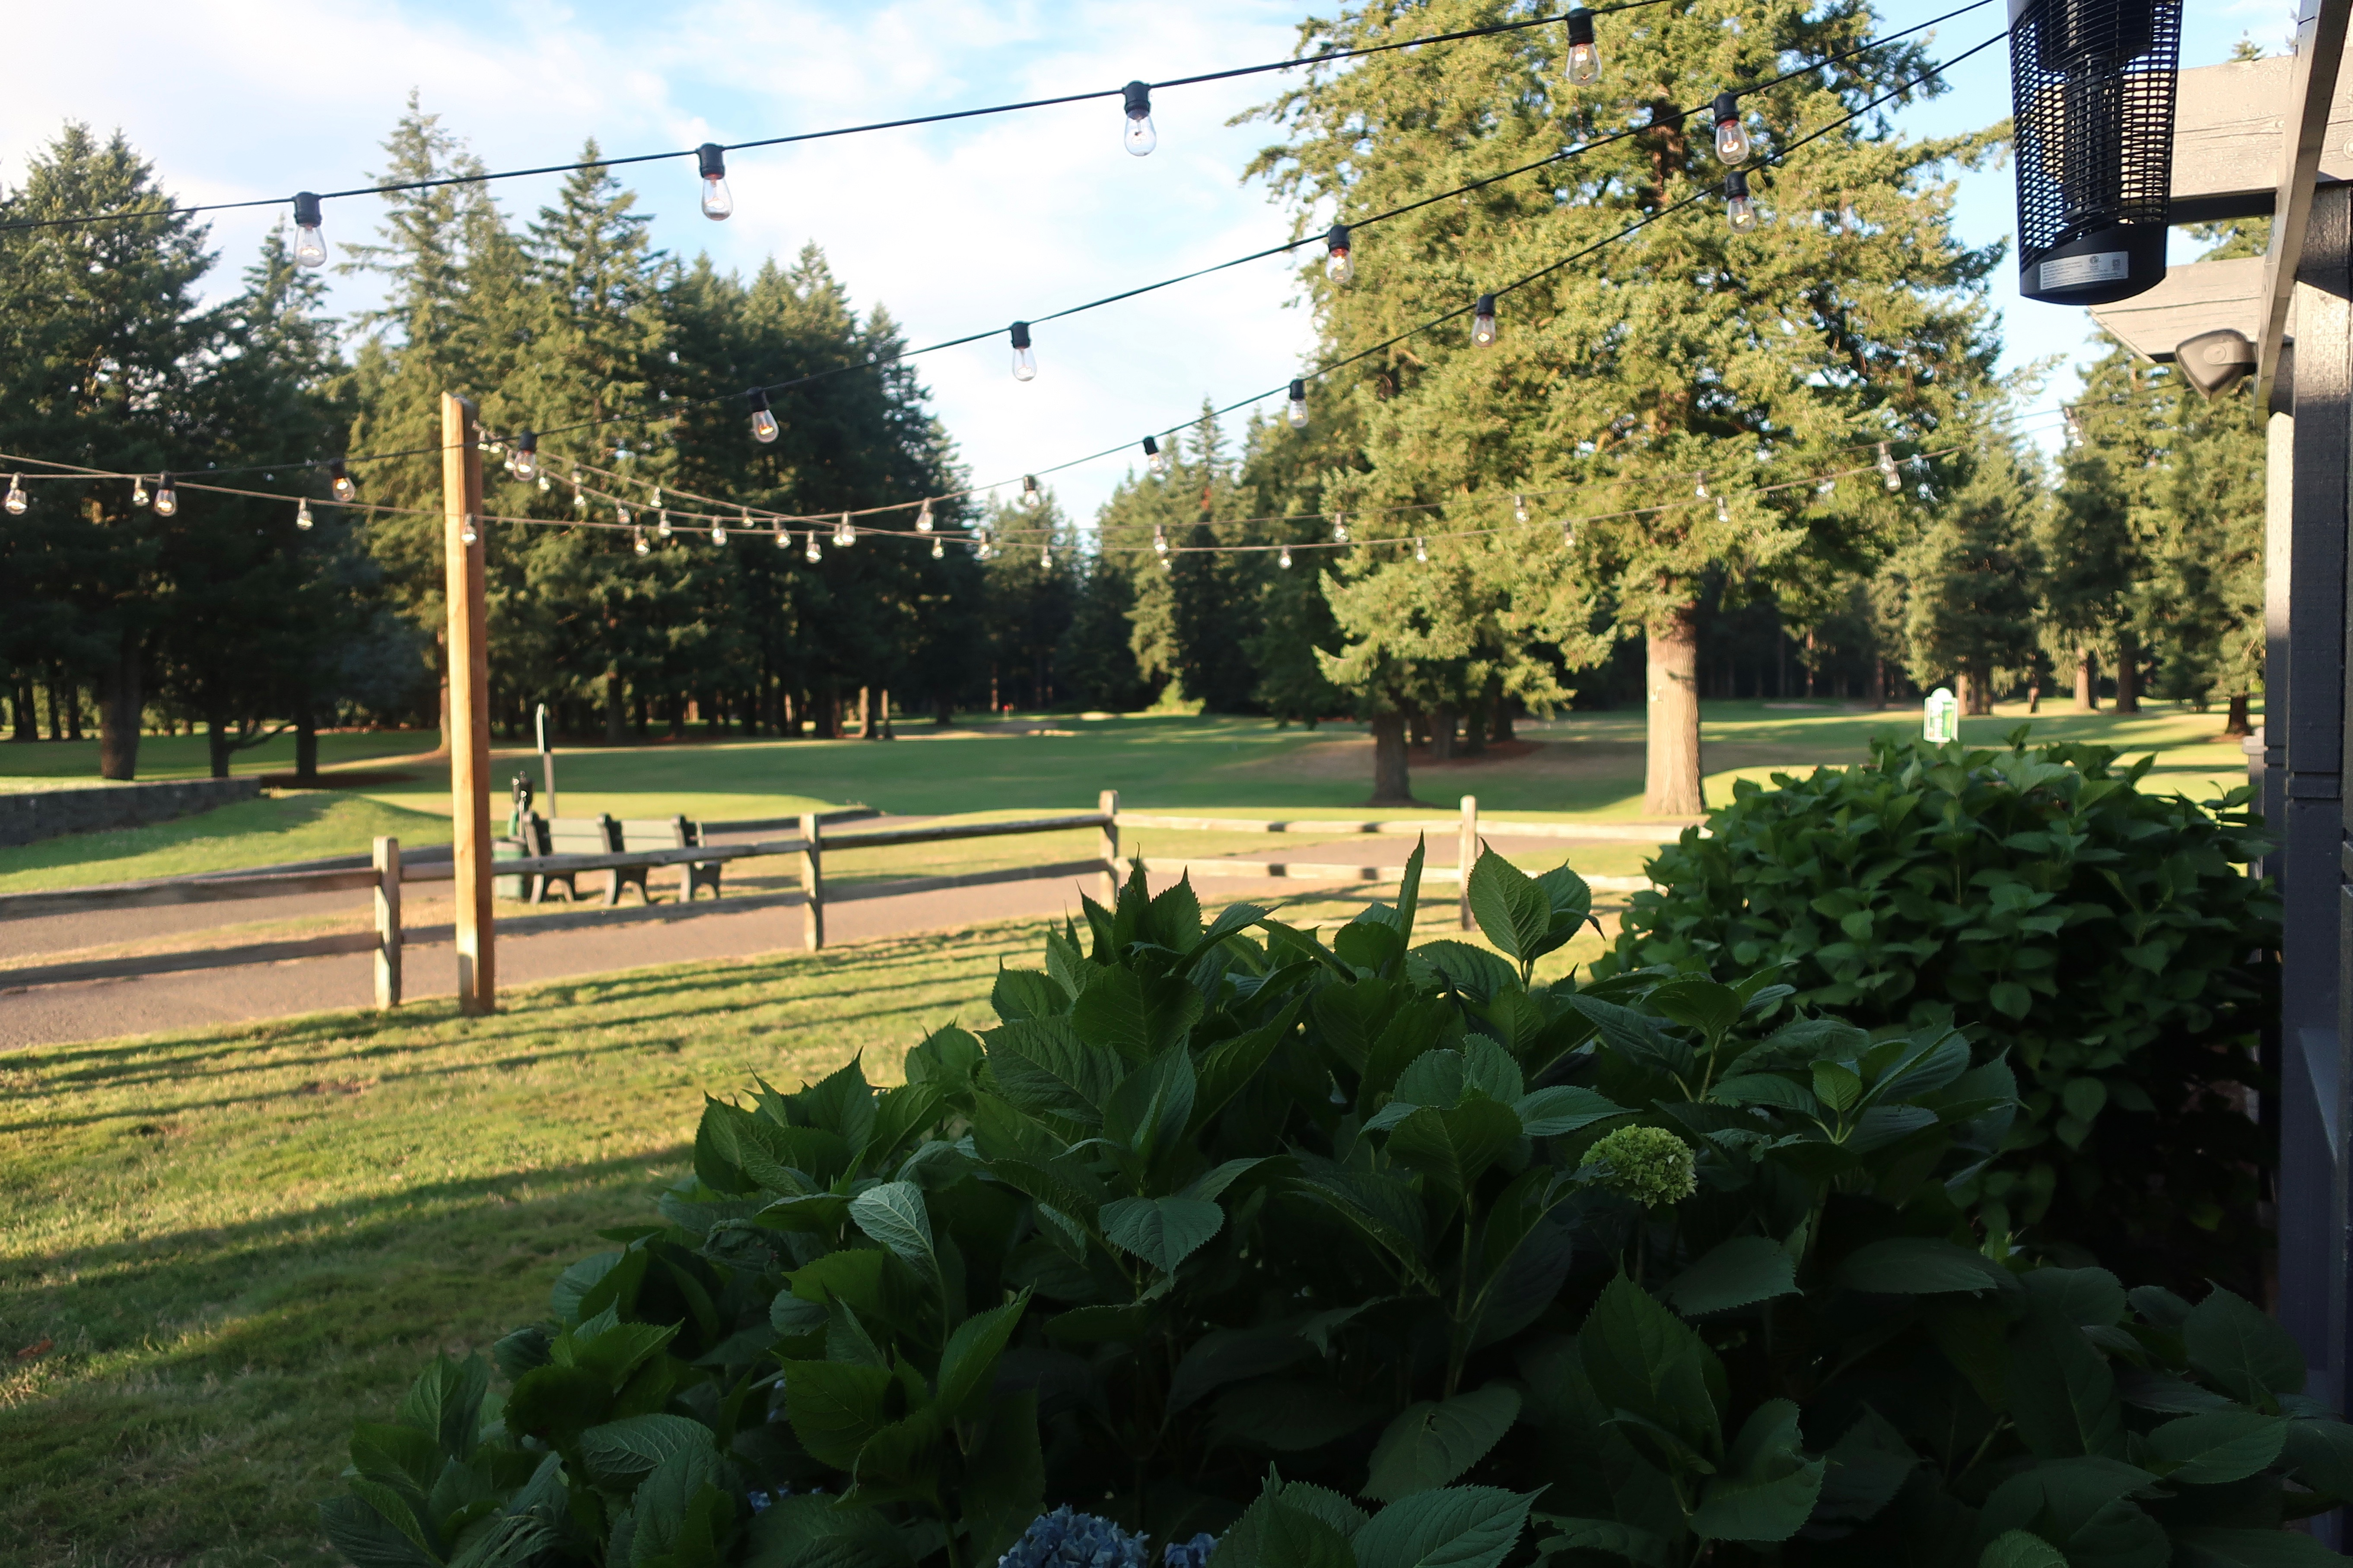 A view from the covered patio of Glendoveer Golf Course at Von Ebert Brewing - East.